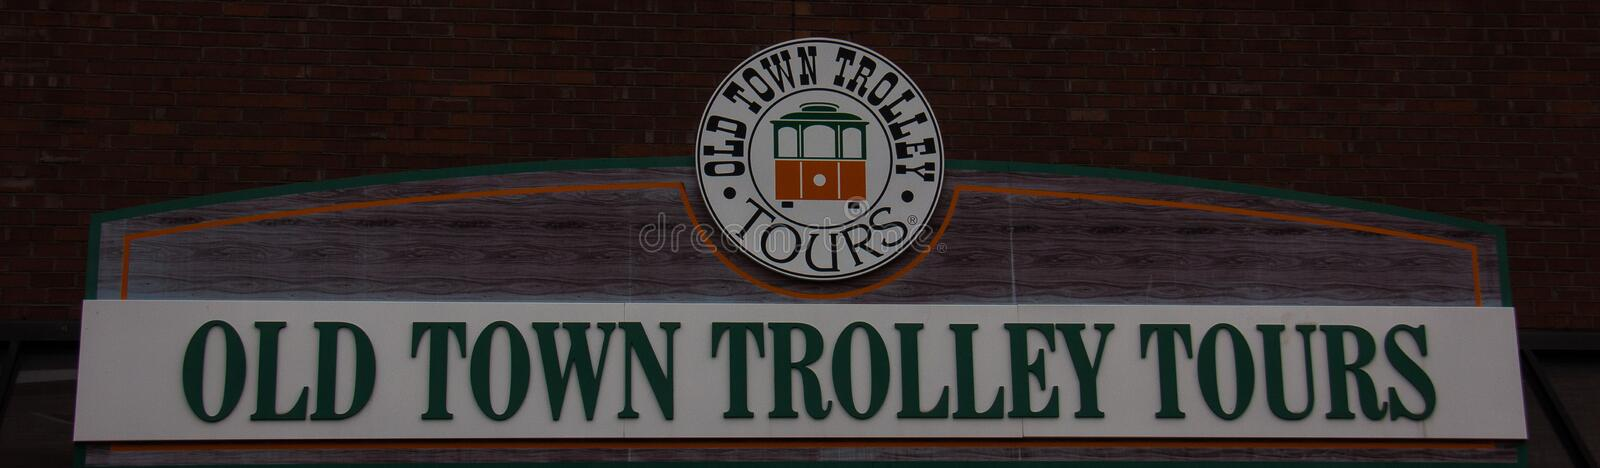 Old Town Trolley Tours Sign stock images